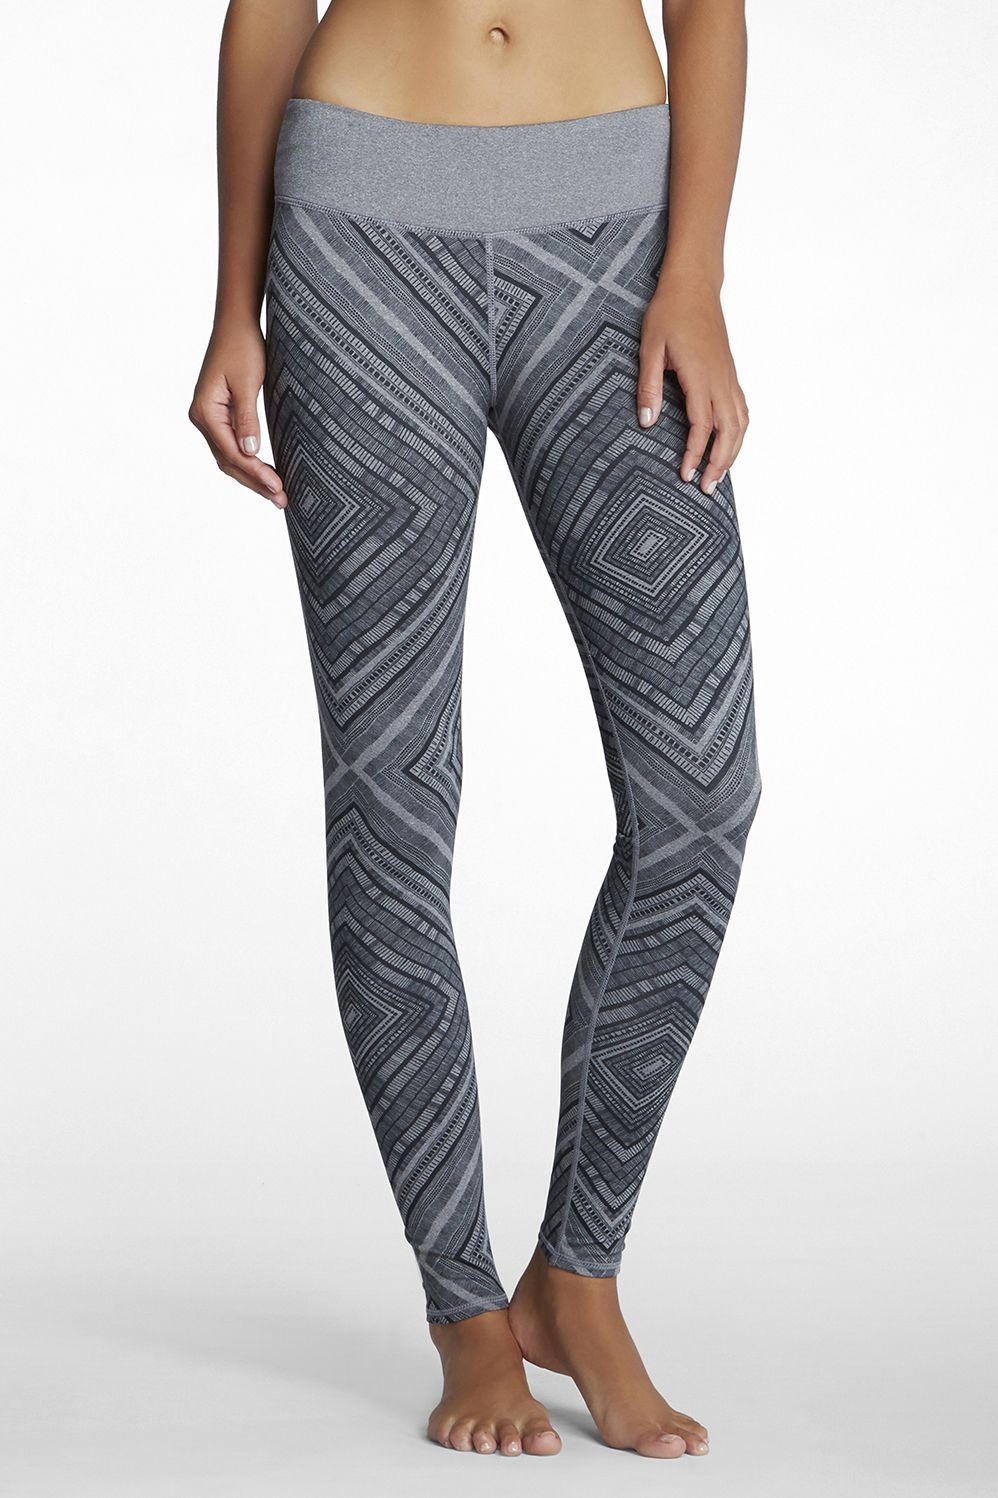 16db09a73e Join the tribe in our exotic, printed leggings that will lead you to your  style and fitness goals.